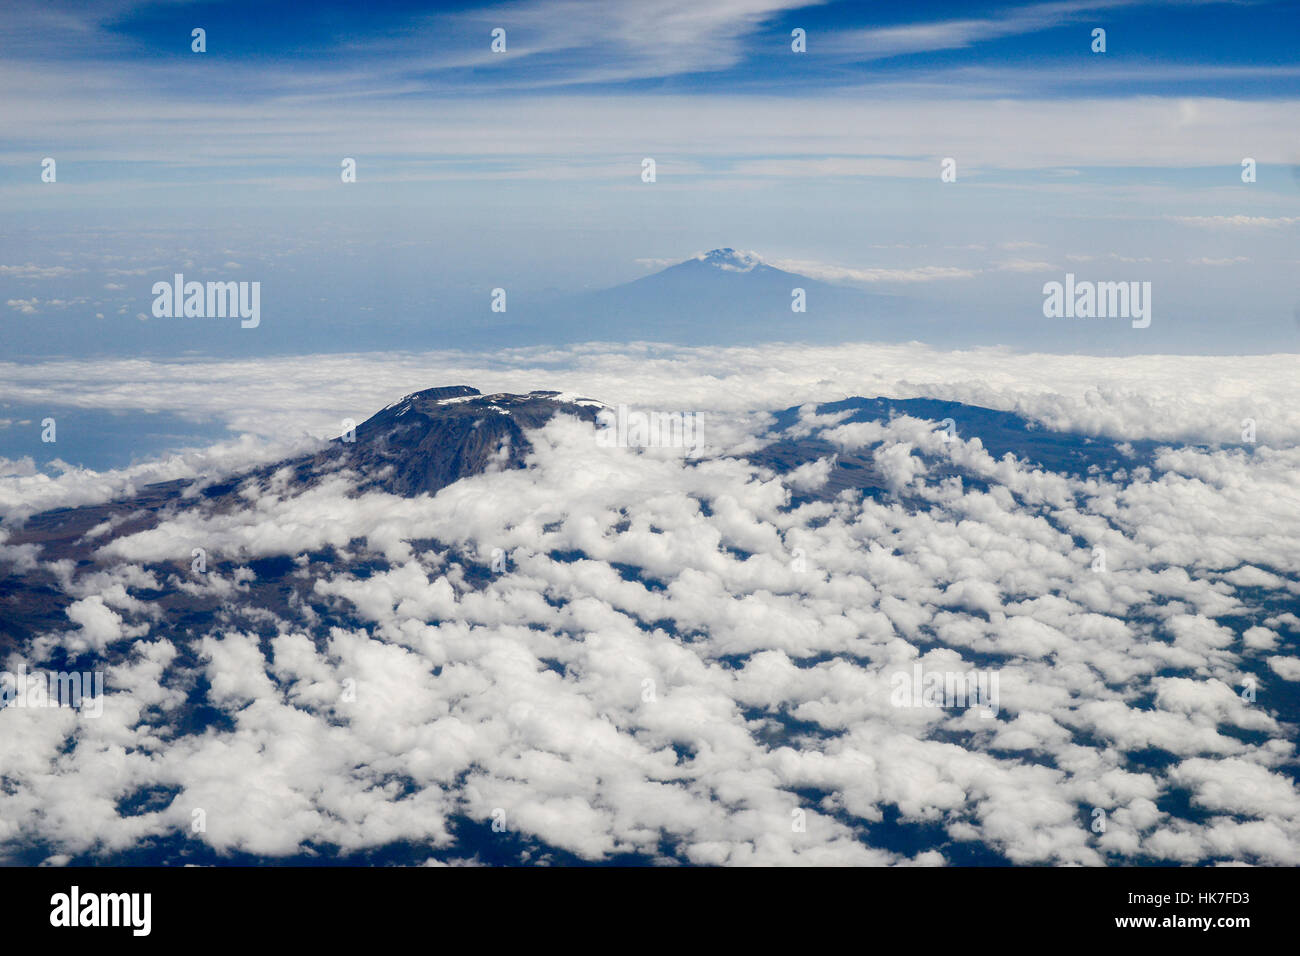 Tanzania, aerial view Mount Kilimanjaro 5895 metre in the back and volcano Mount Meru 4562 metre in the front / - Stock Image